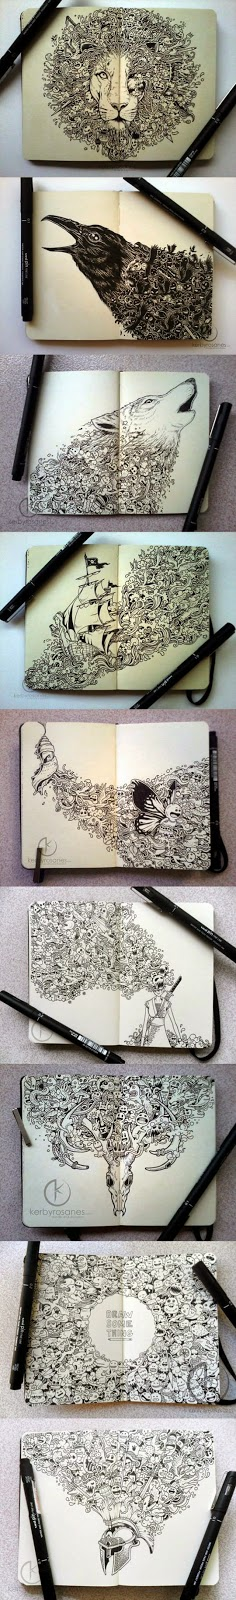 doodles-art-drawing